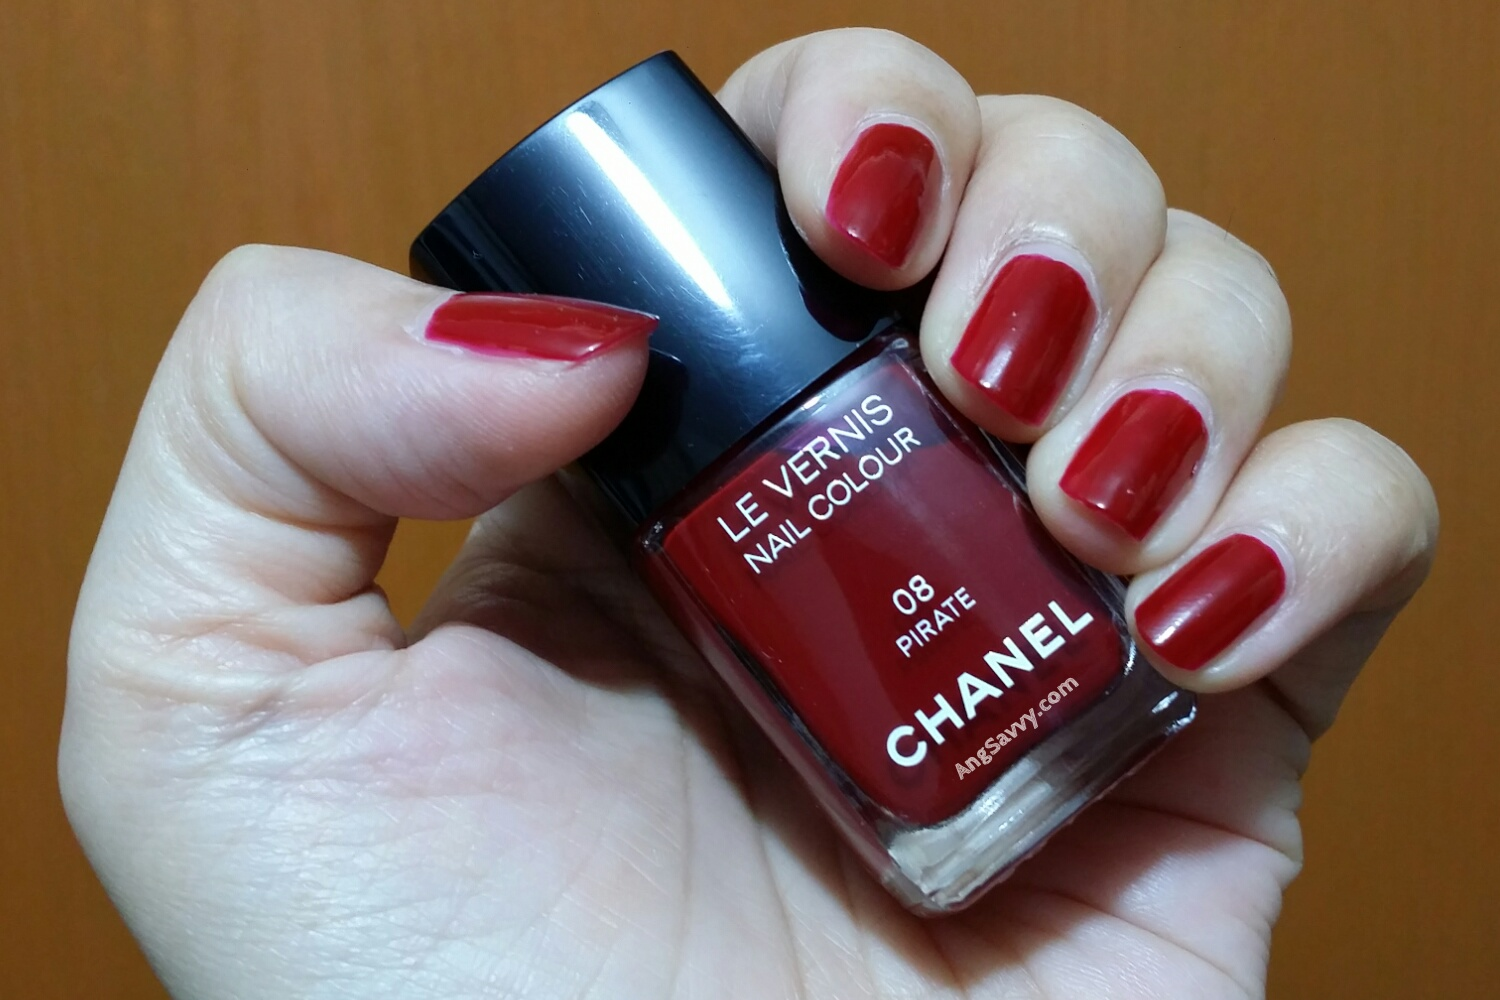 Chanel Pirate Nail Polish Review (Should You Buy This?) - Ang Savvy